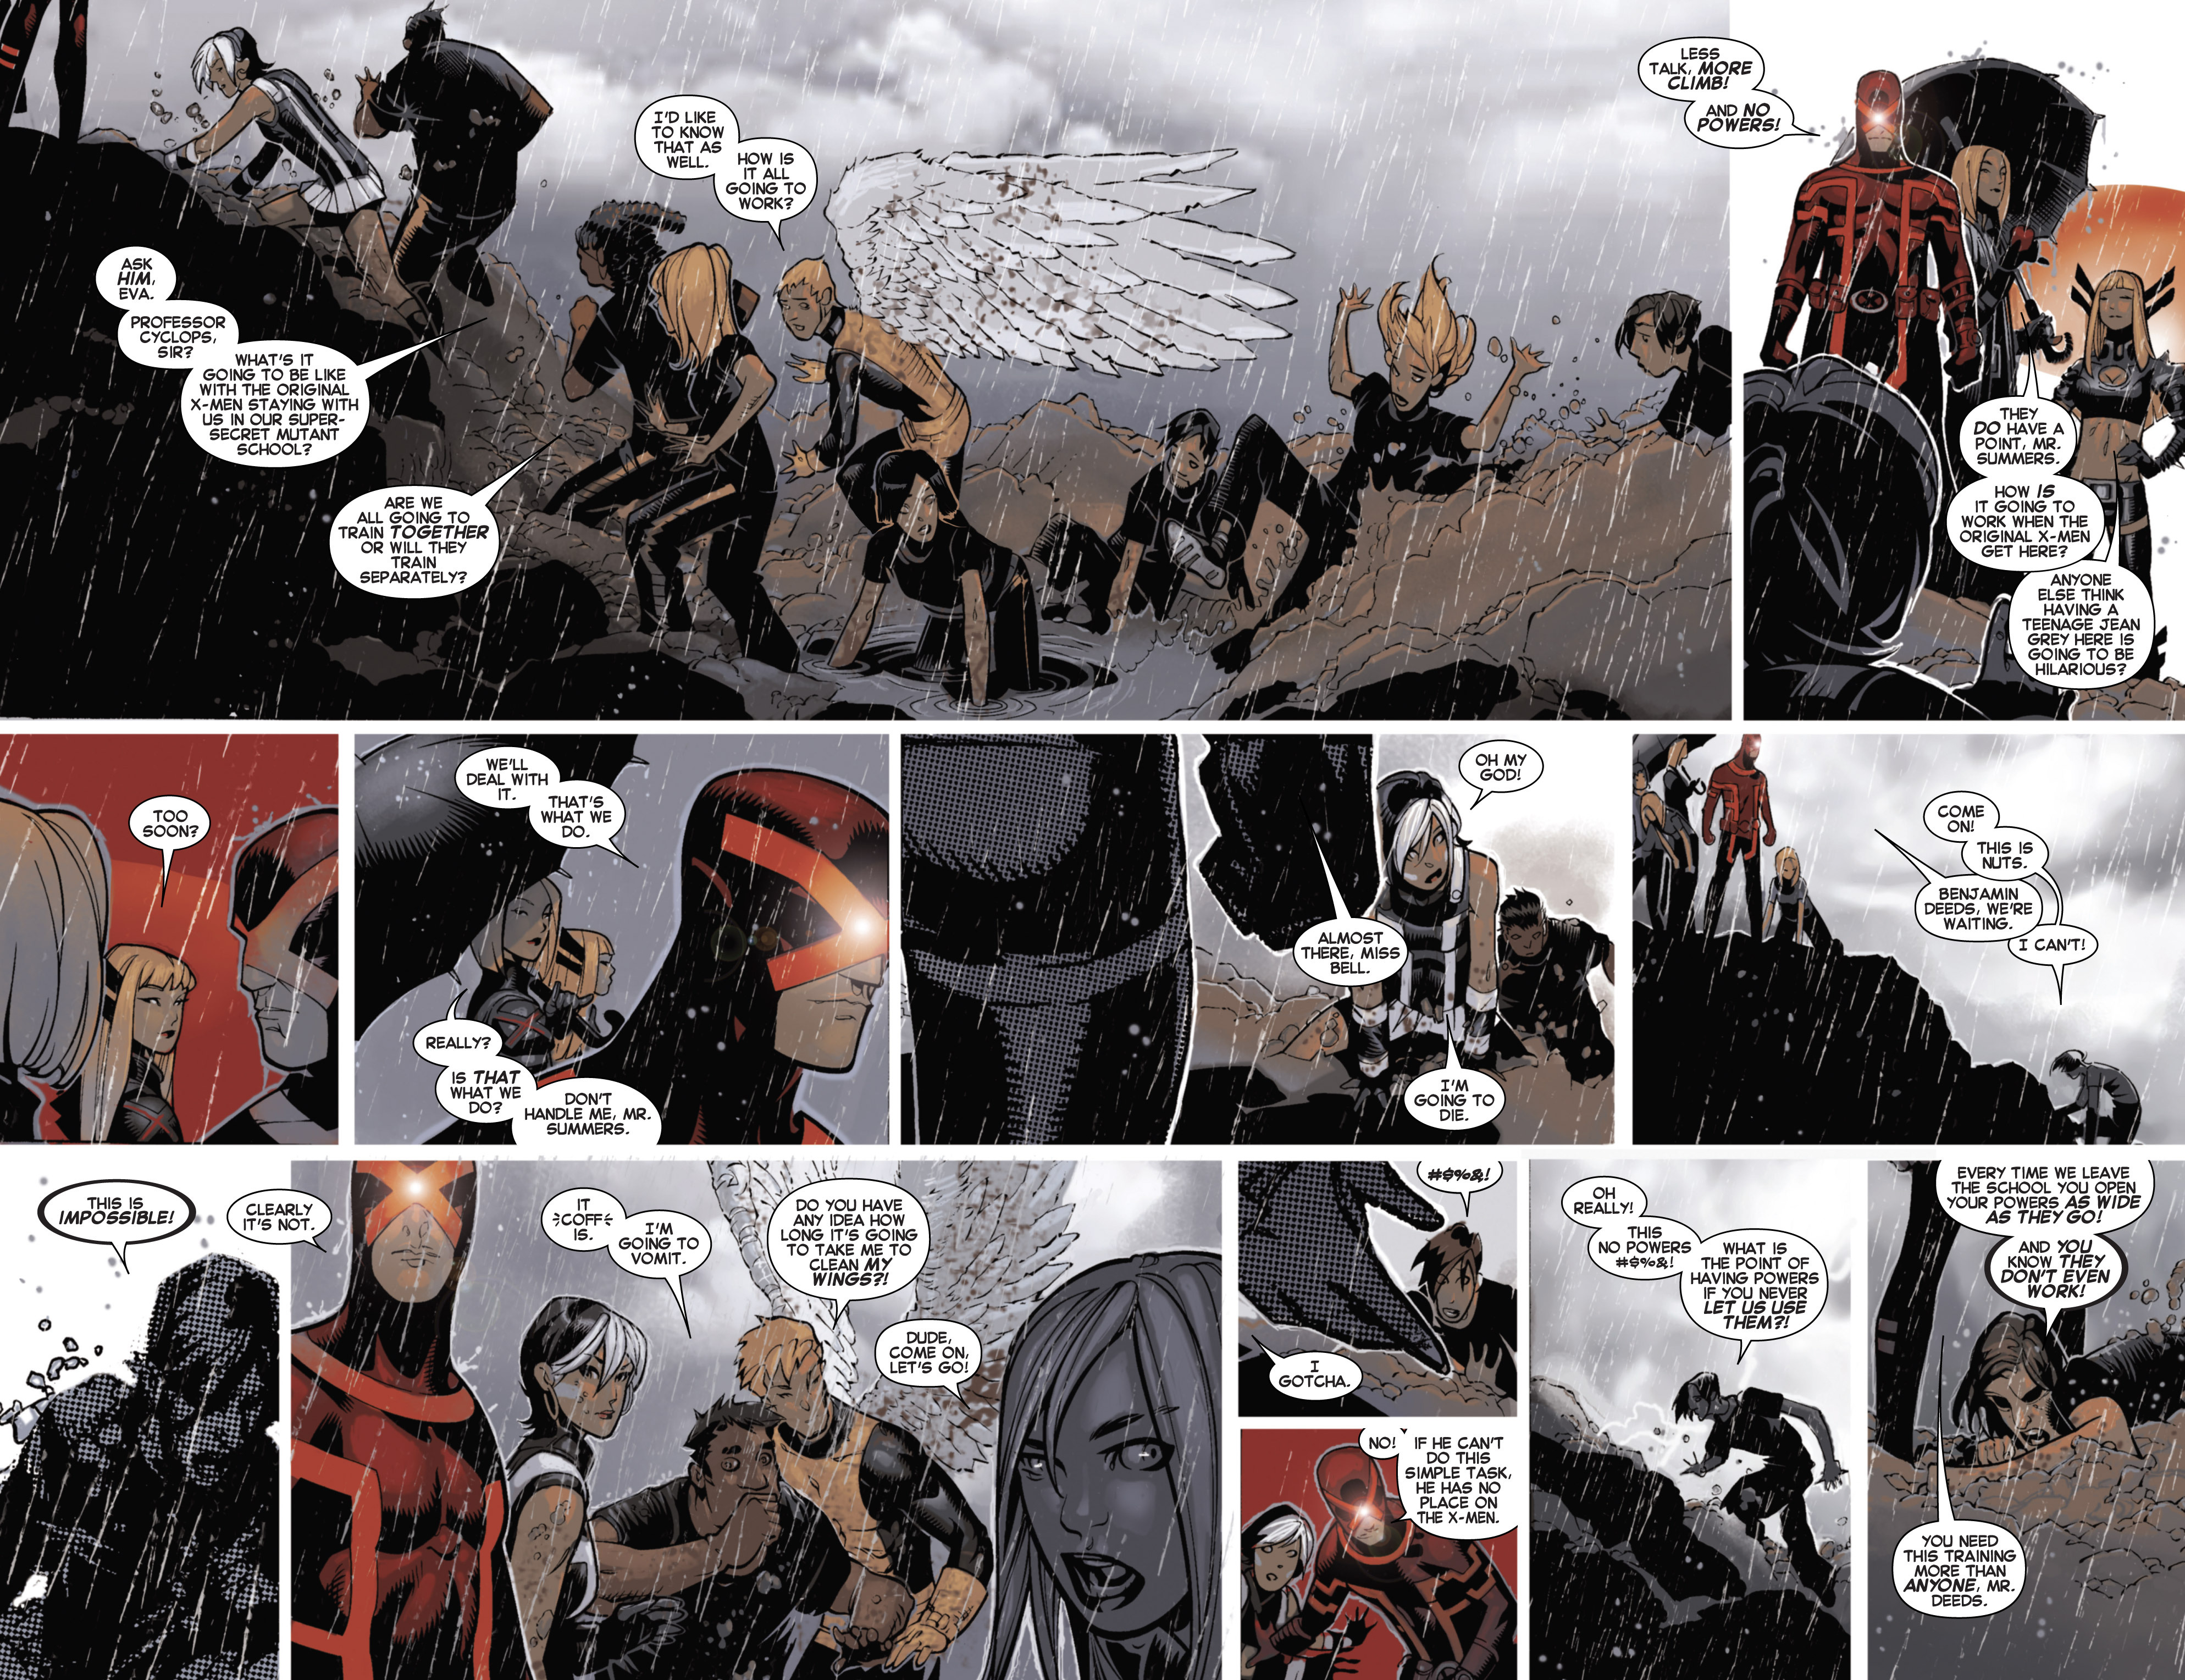 Read online Uncanny X-Men (2013) comic -  Issue # _TPB 3 - The Good, The Bad, The Inhuman - 6